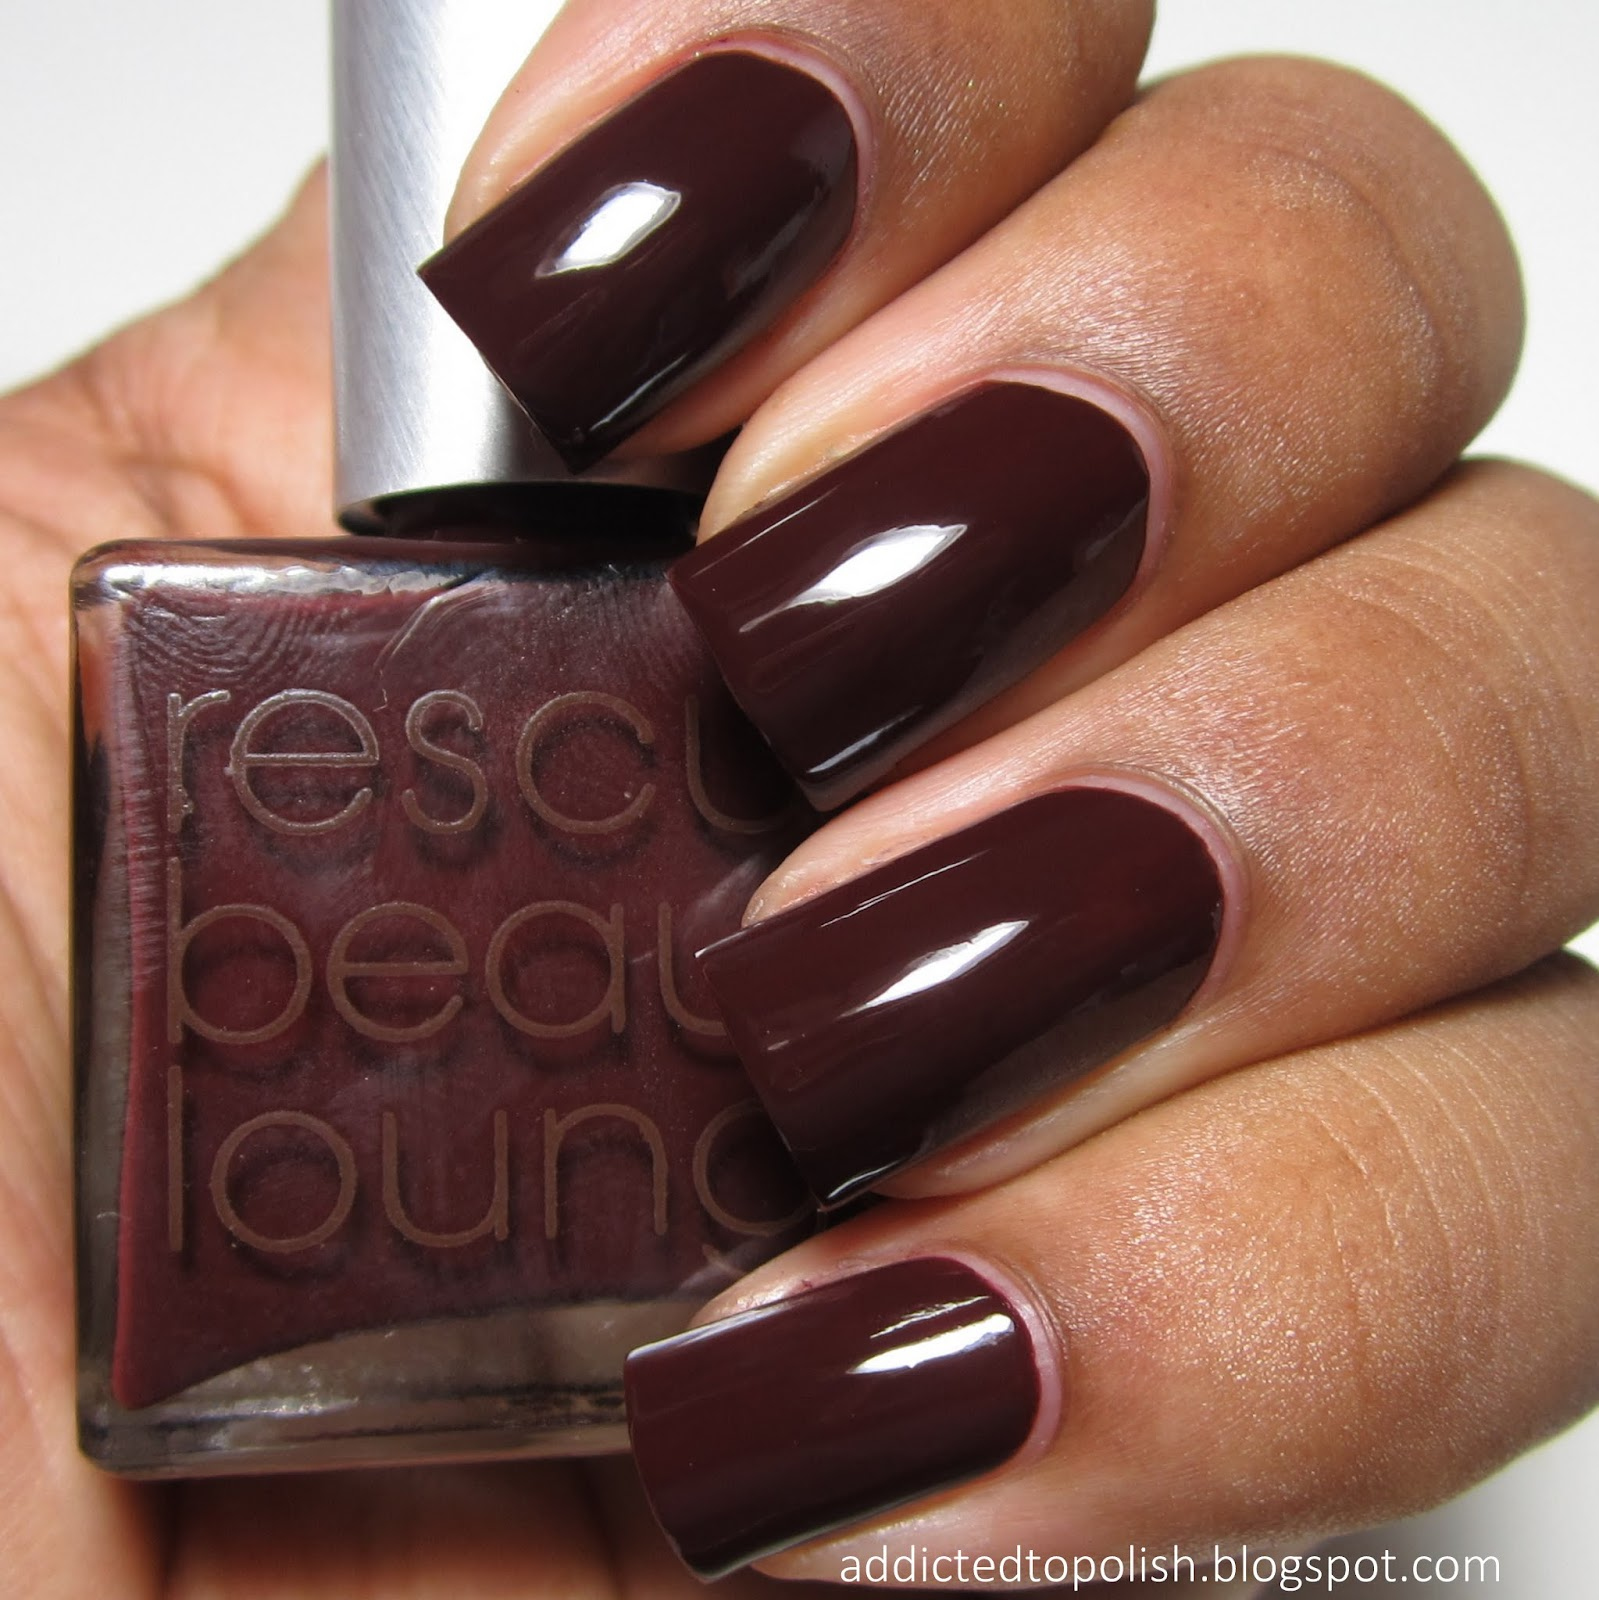 rescue-beauty-lounge-au-chocolat-rbl